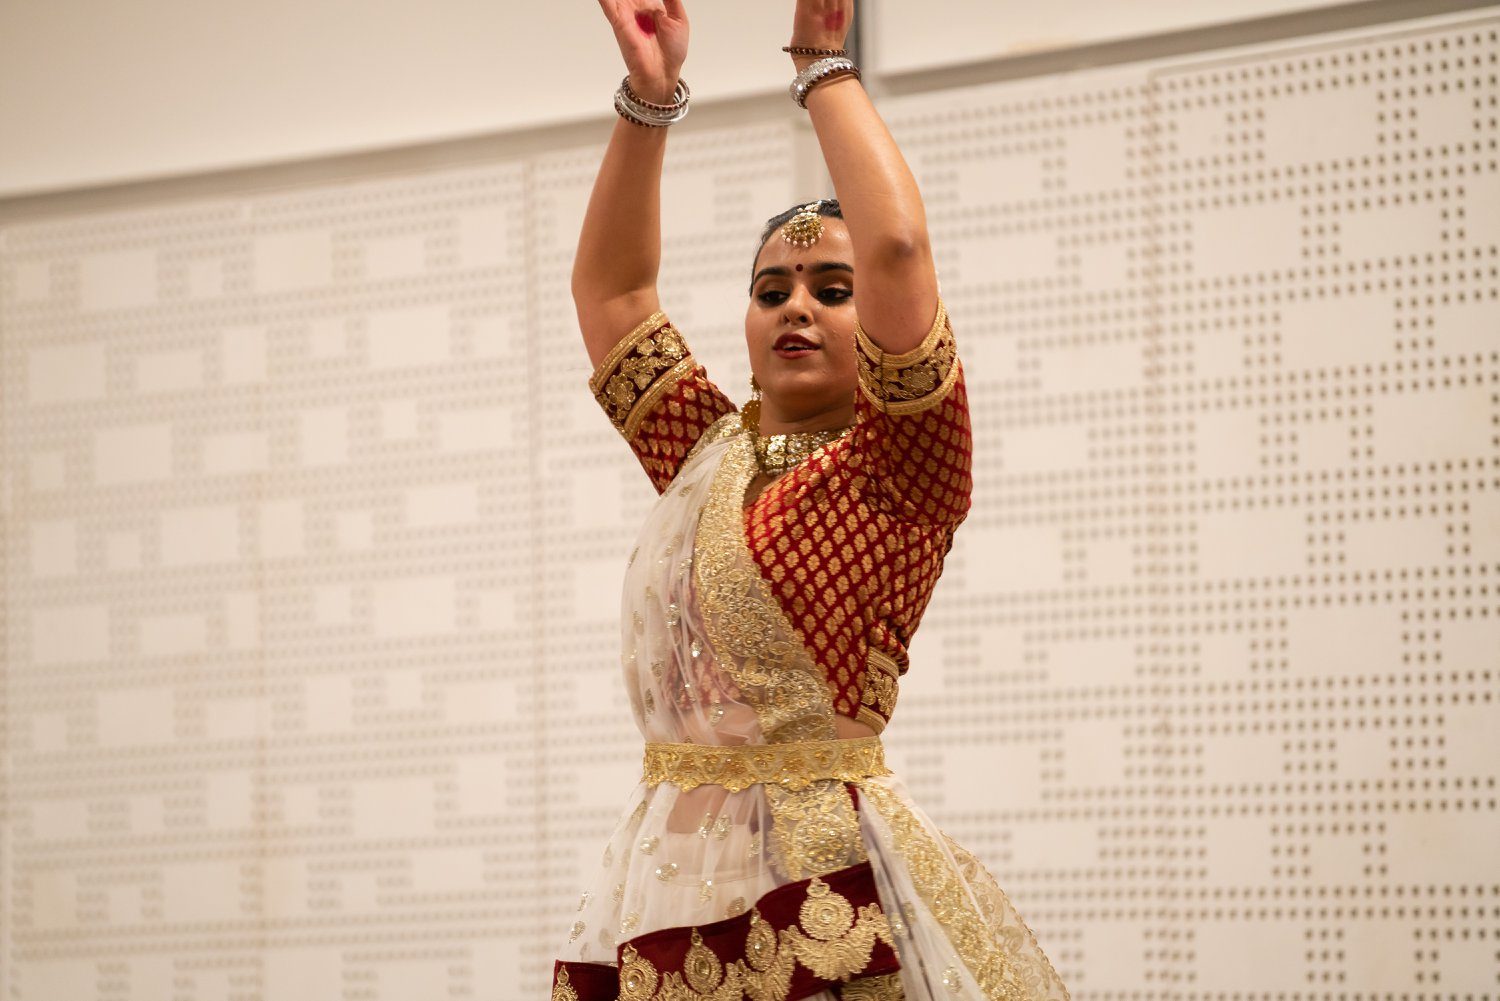 Indian Fine Arts Dance 1.jpg